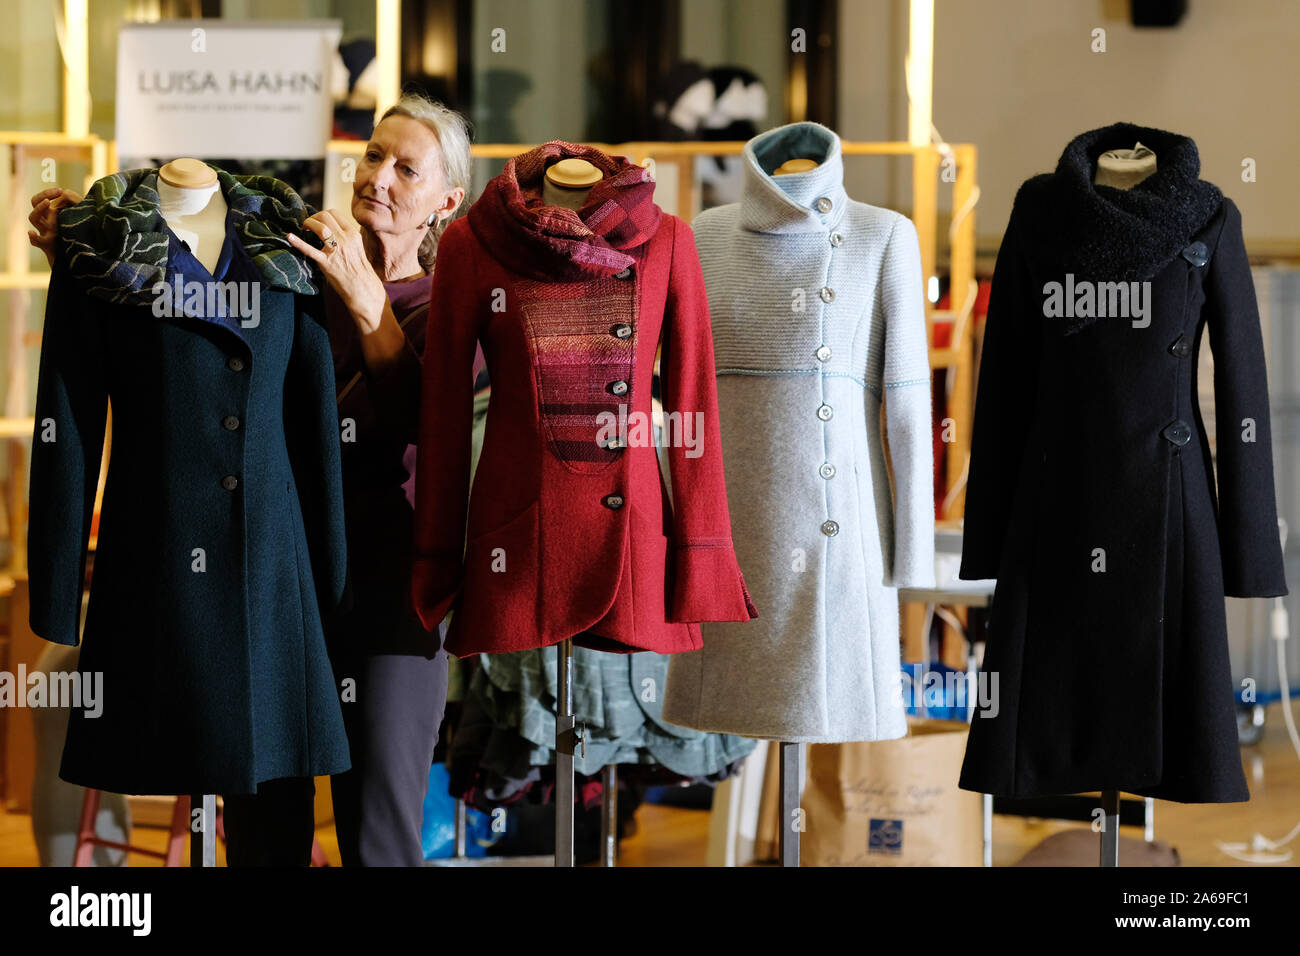 Leipzig Germany 24th Oct 2019 Fashion Designer Luisa Hahn Shows Coats From Her Collection At The